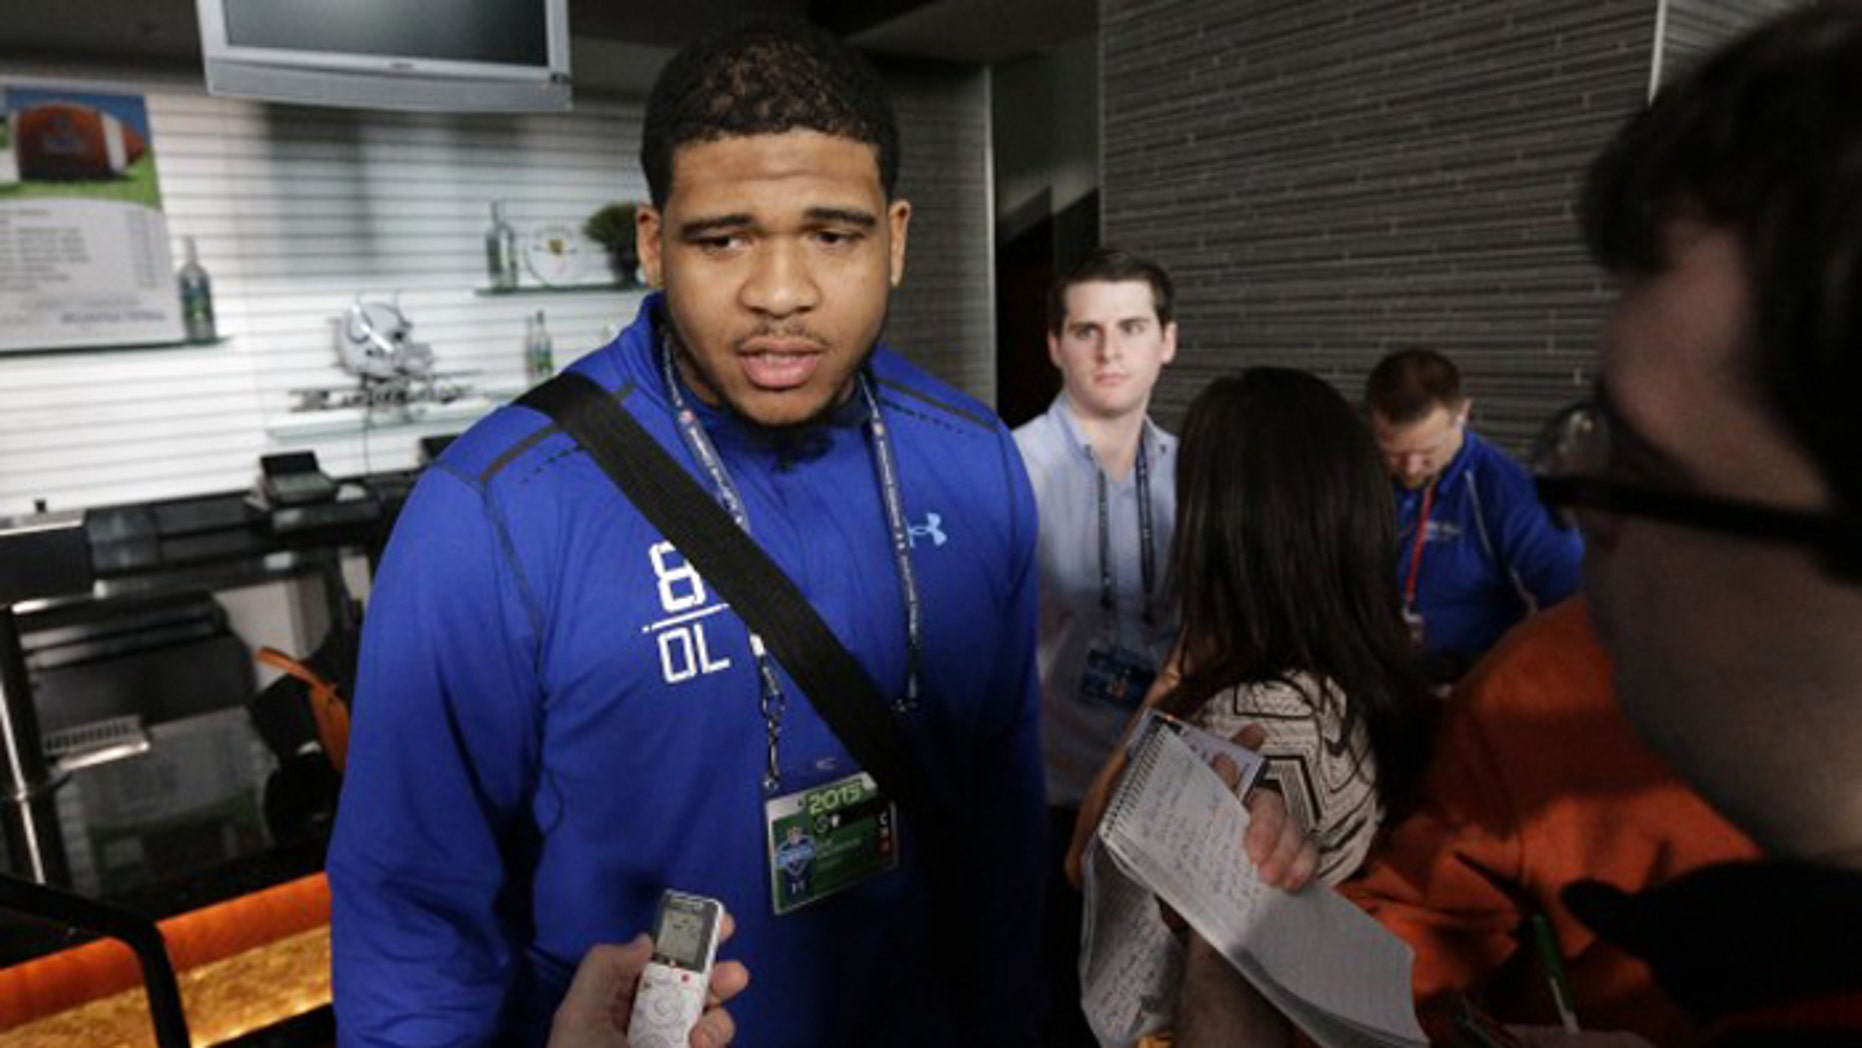 La'el Collins is considered one of the top prospects in Thursday's NFL draft. Baton Rouge police reportedly want to question him after a pregnant woman's murder. He is not a suspect.